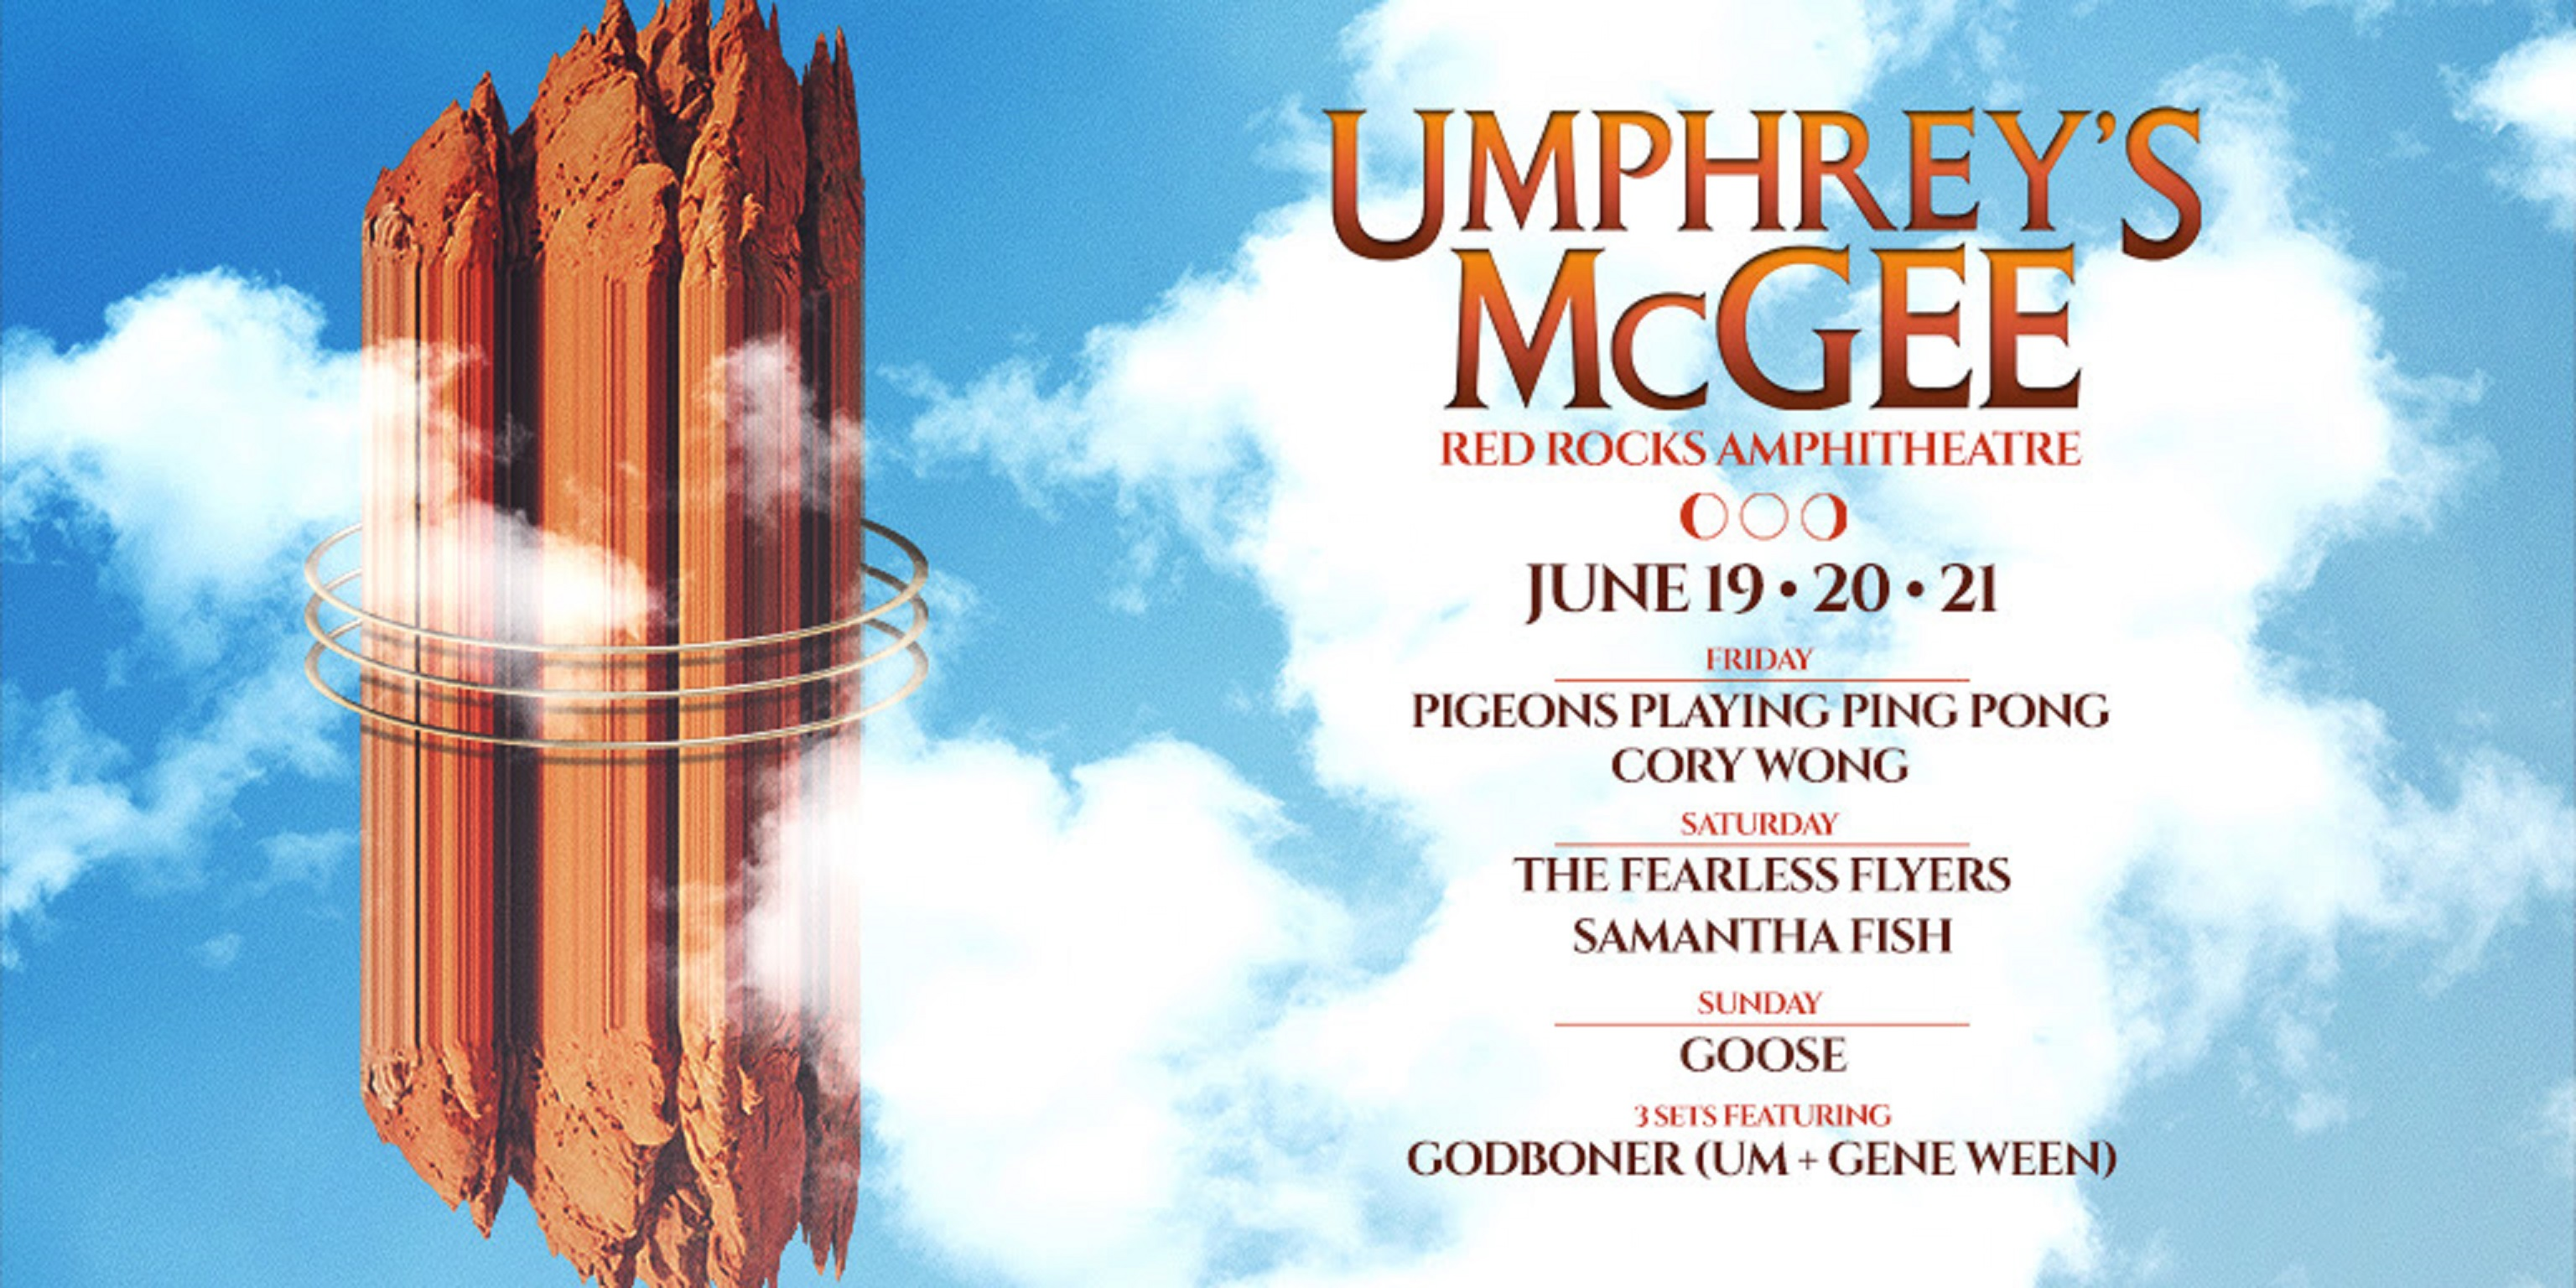 Umphrey's McGee Return To Red Rocks June 19-21